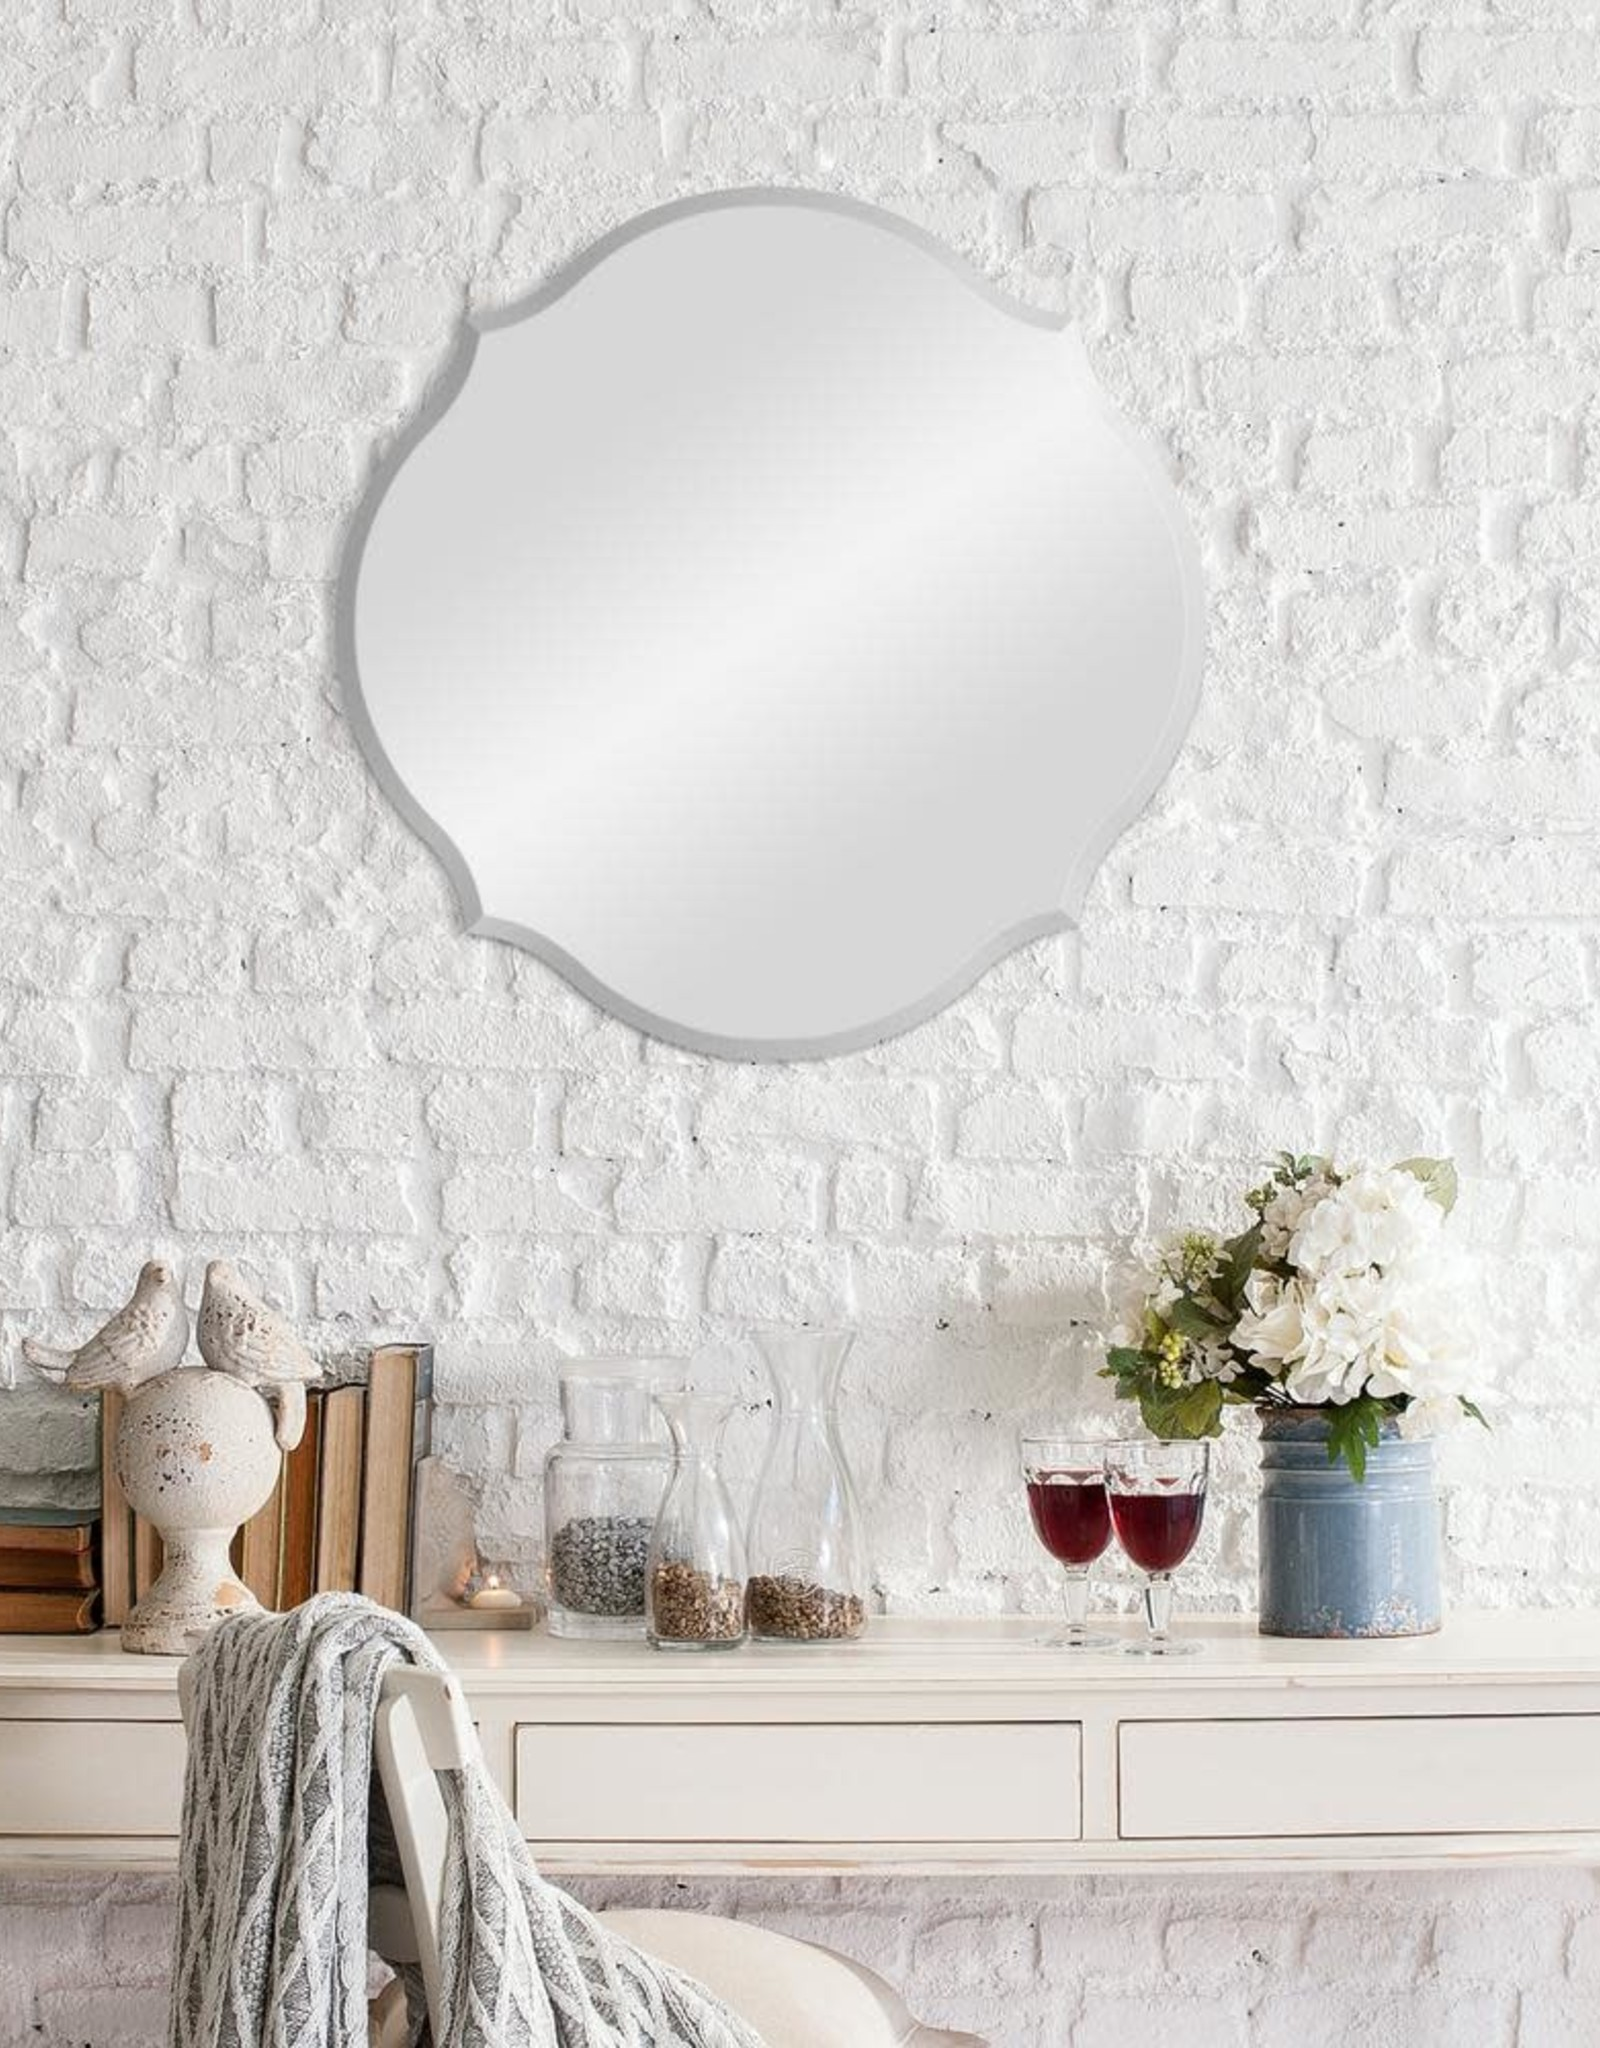 Pinnacle Medium Oval Beveled Glass Mirror (20.5 in. H x 20.5 in. W)